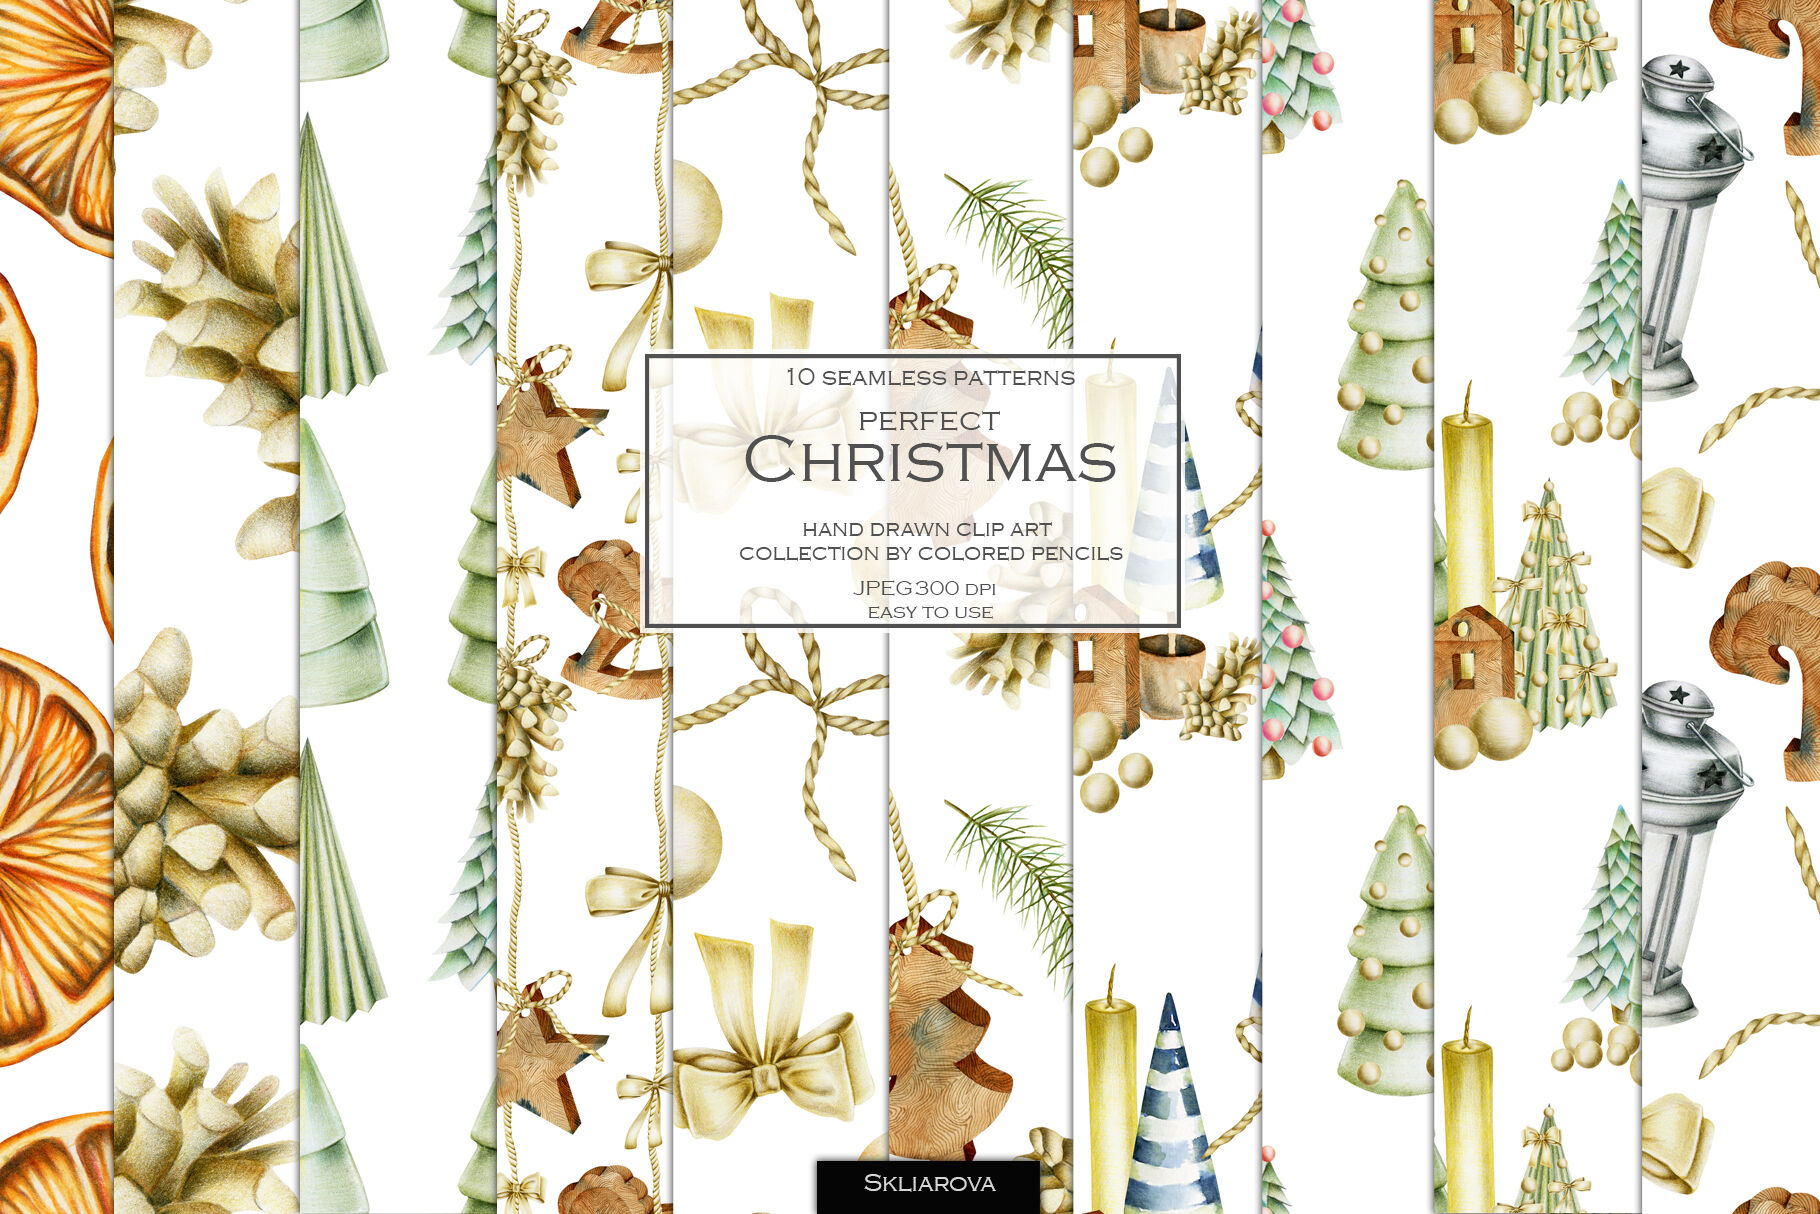 Perfect Christmas 10 Seamless Patterns By Happywatercolorshop